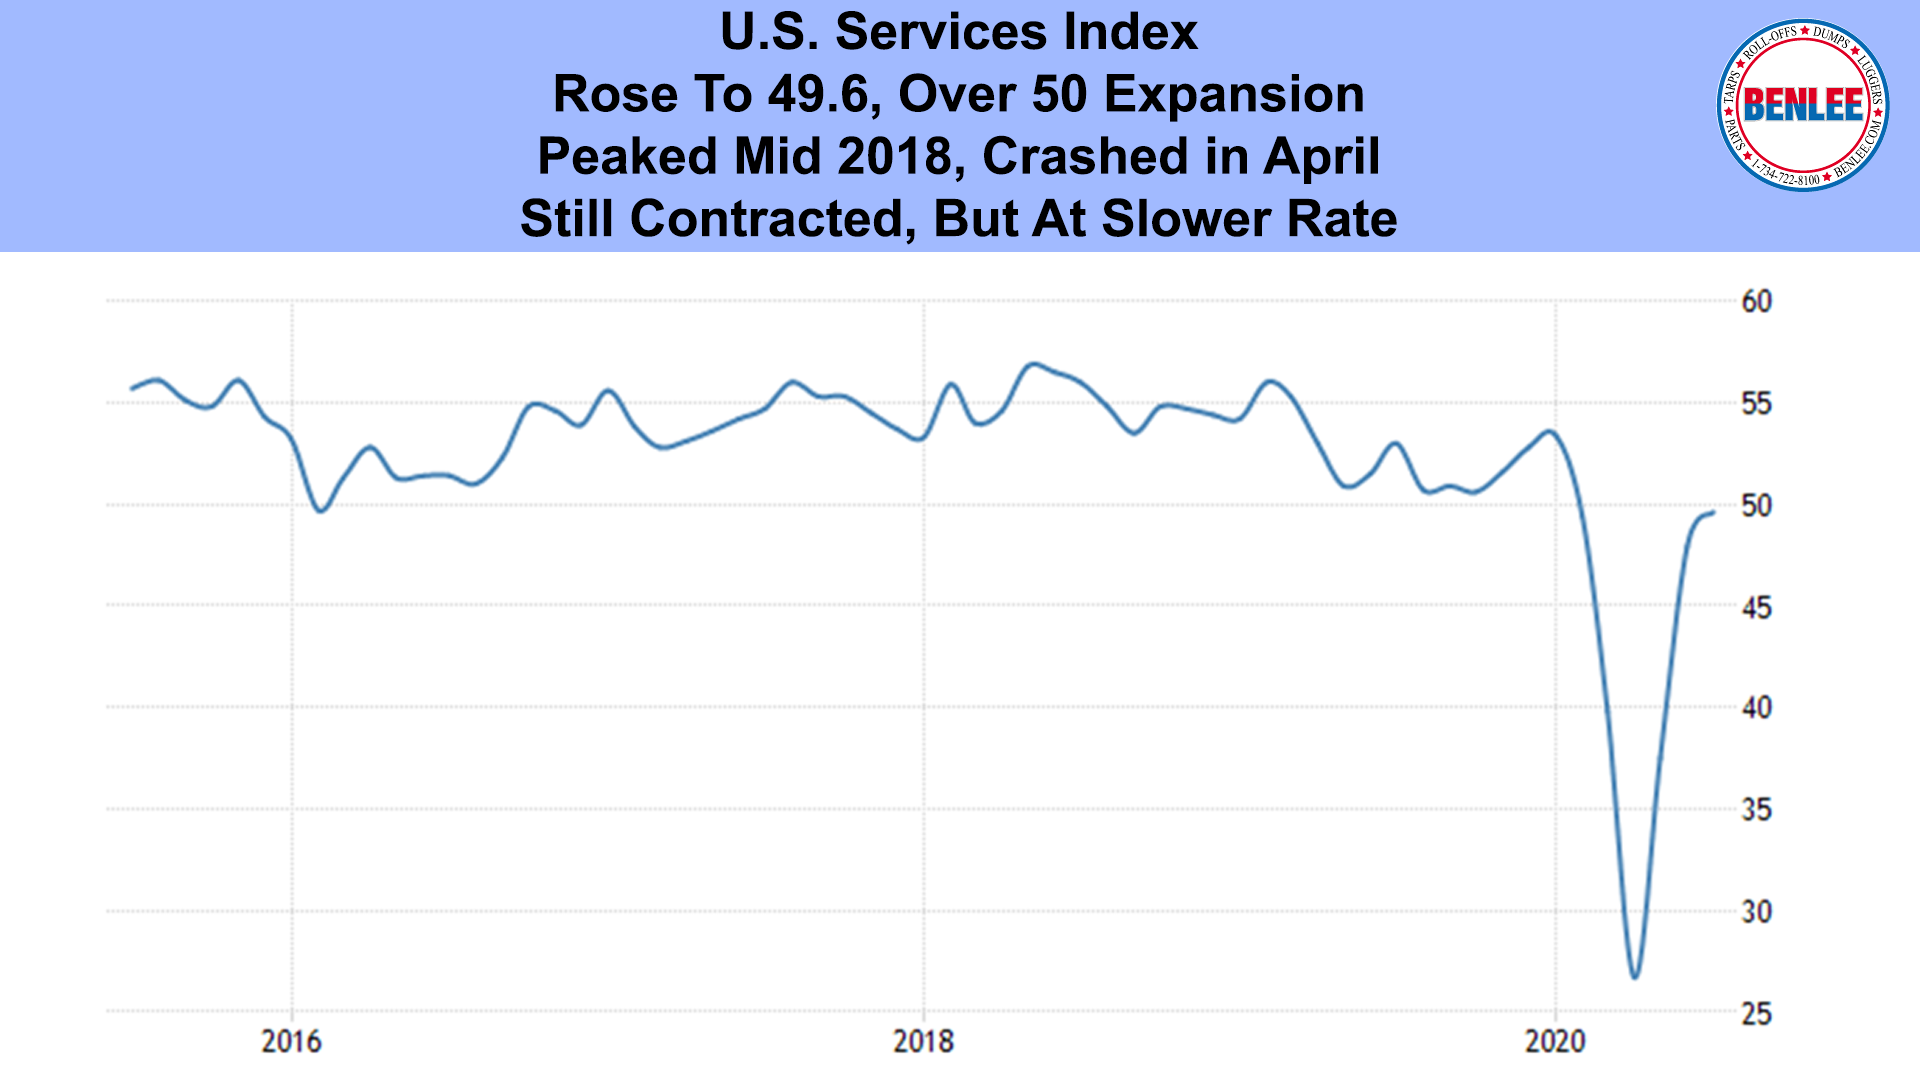 U.S. Services Index